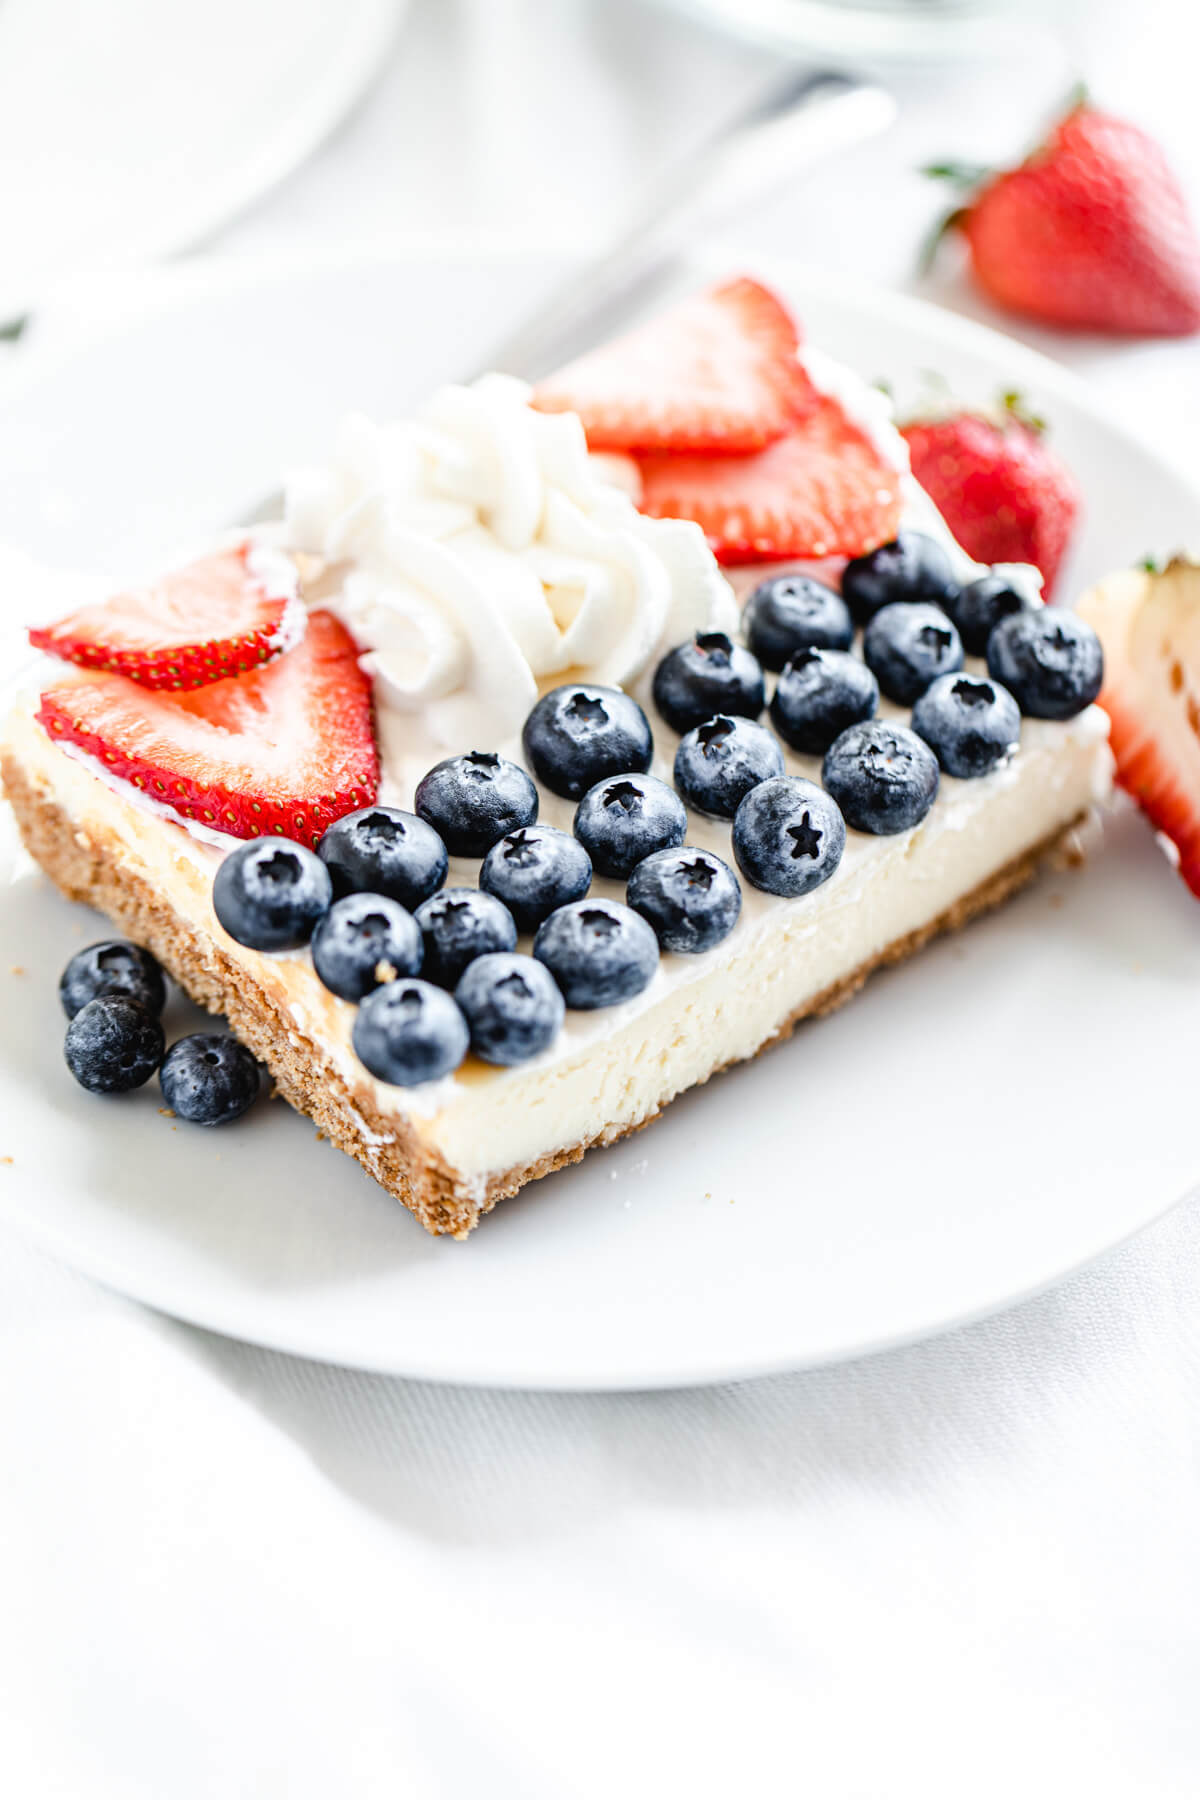 slice of cheesecake with blueberries, whipped cream and strawberries on top on a white plate